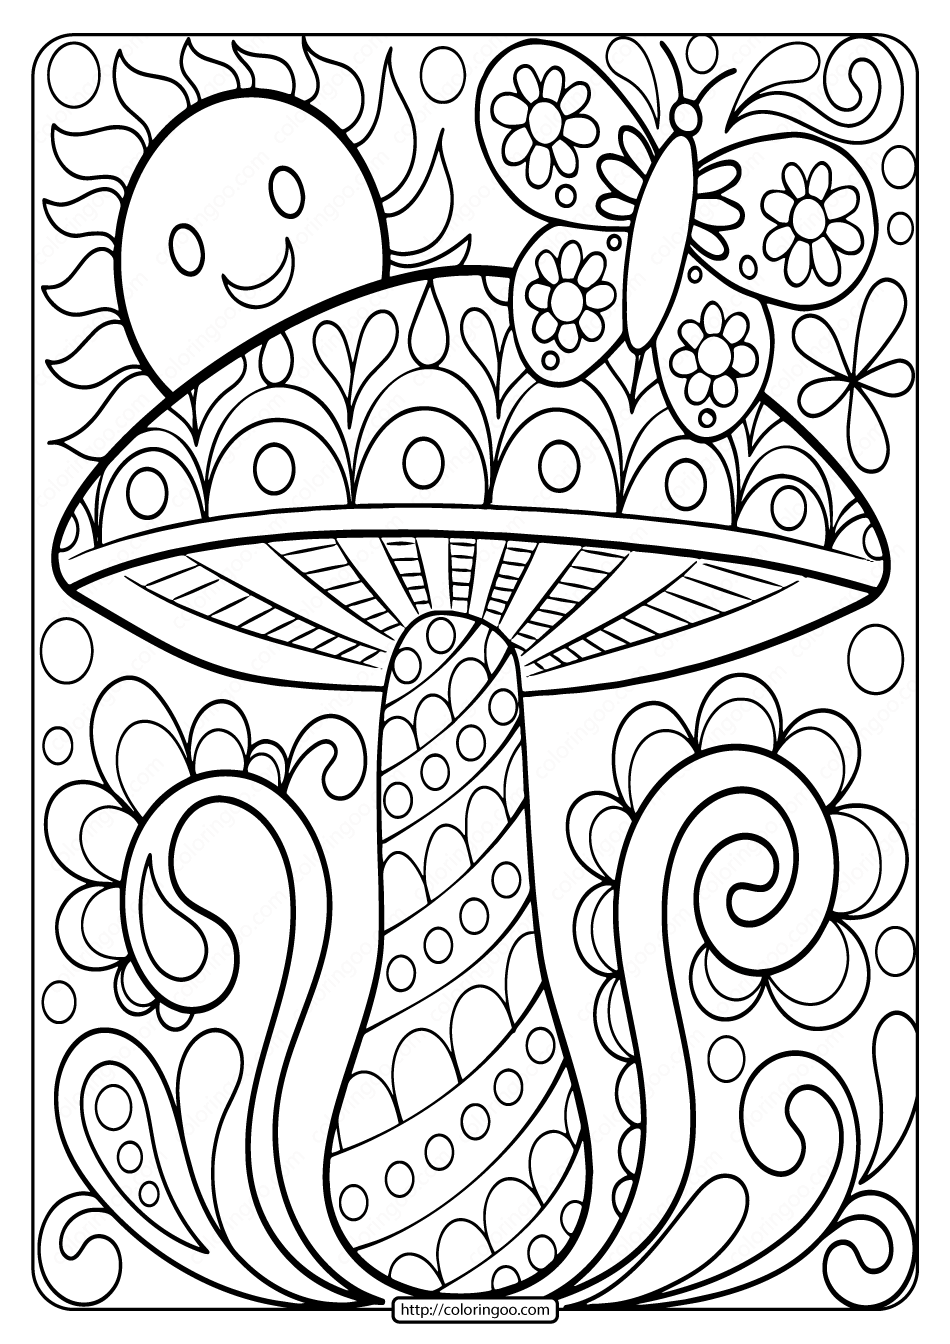 coloring book printable free printable caillou coloring pages for kids cool2bkids printable book coloring